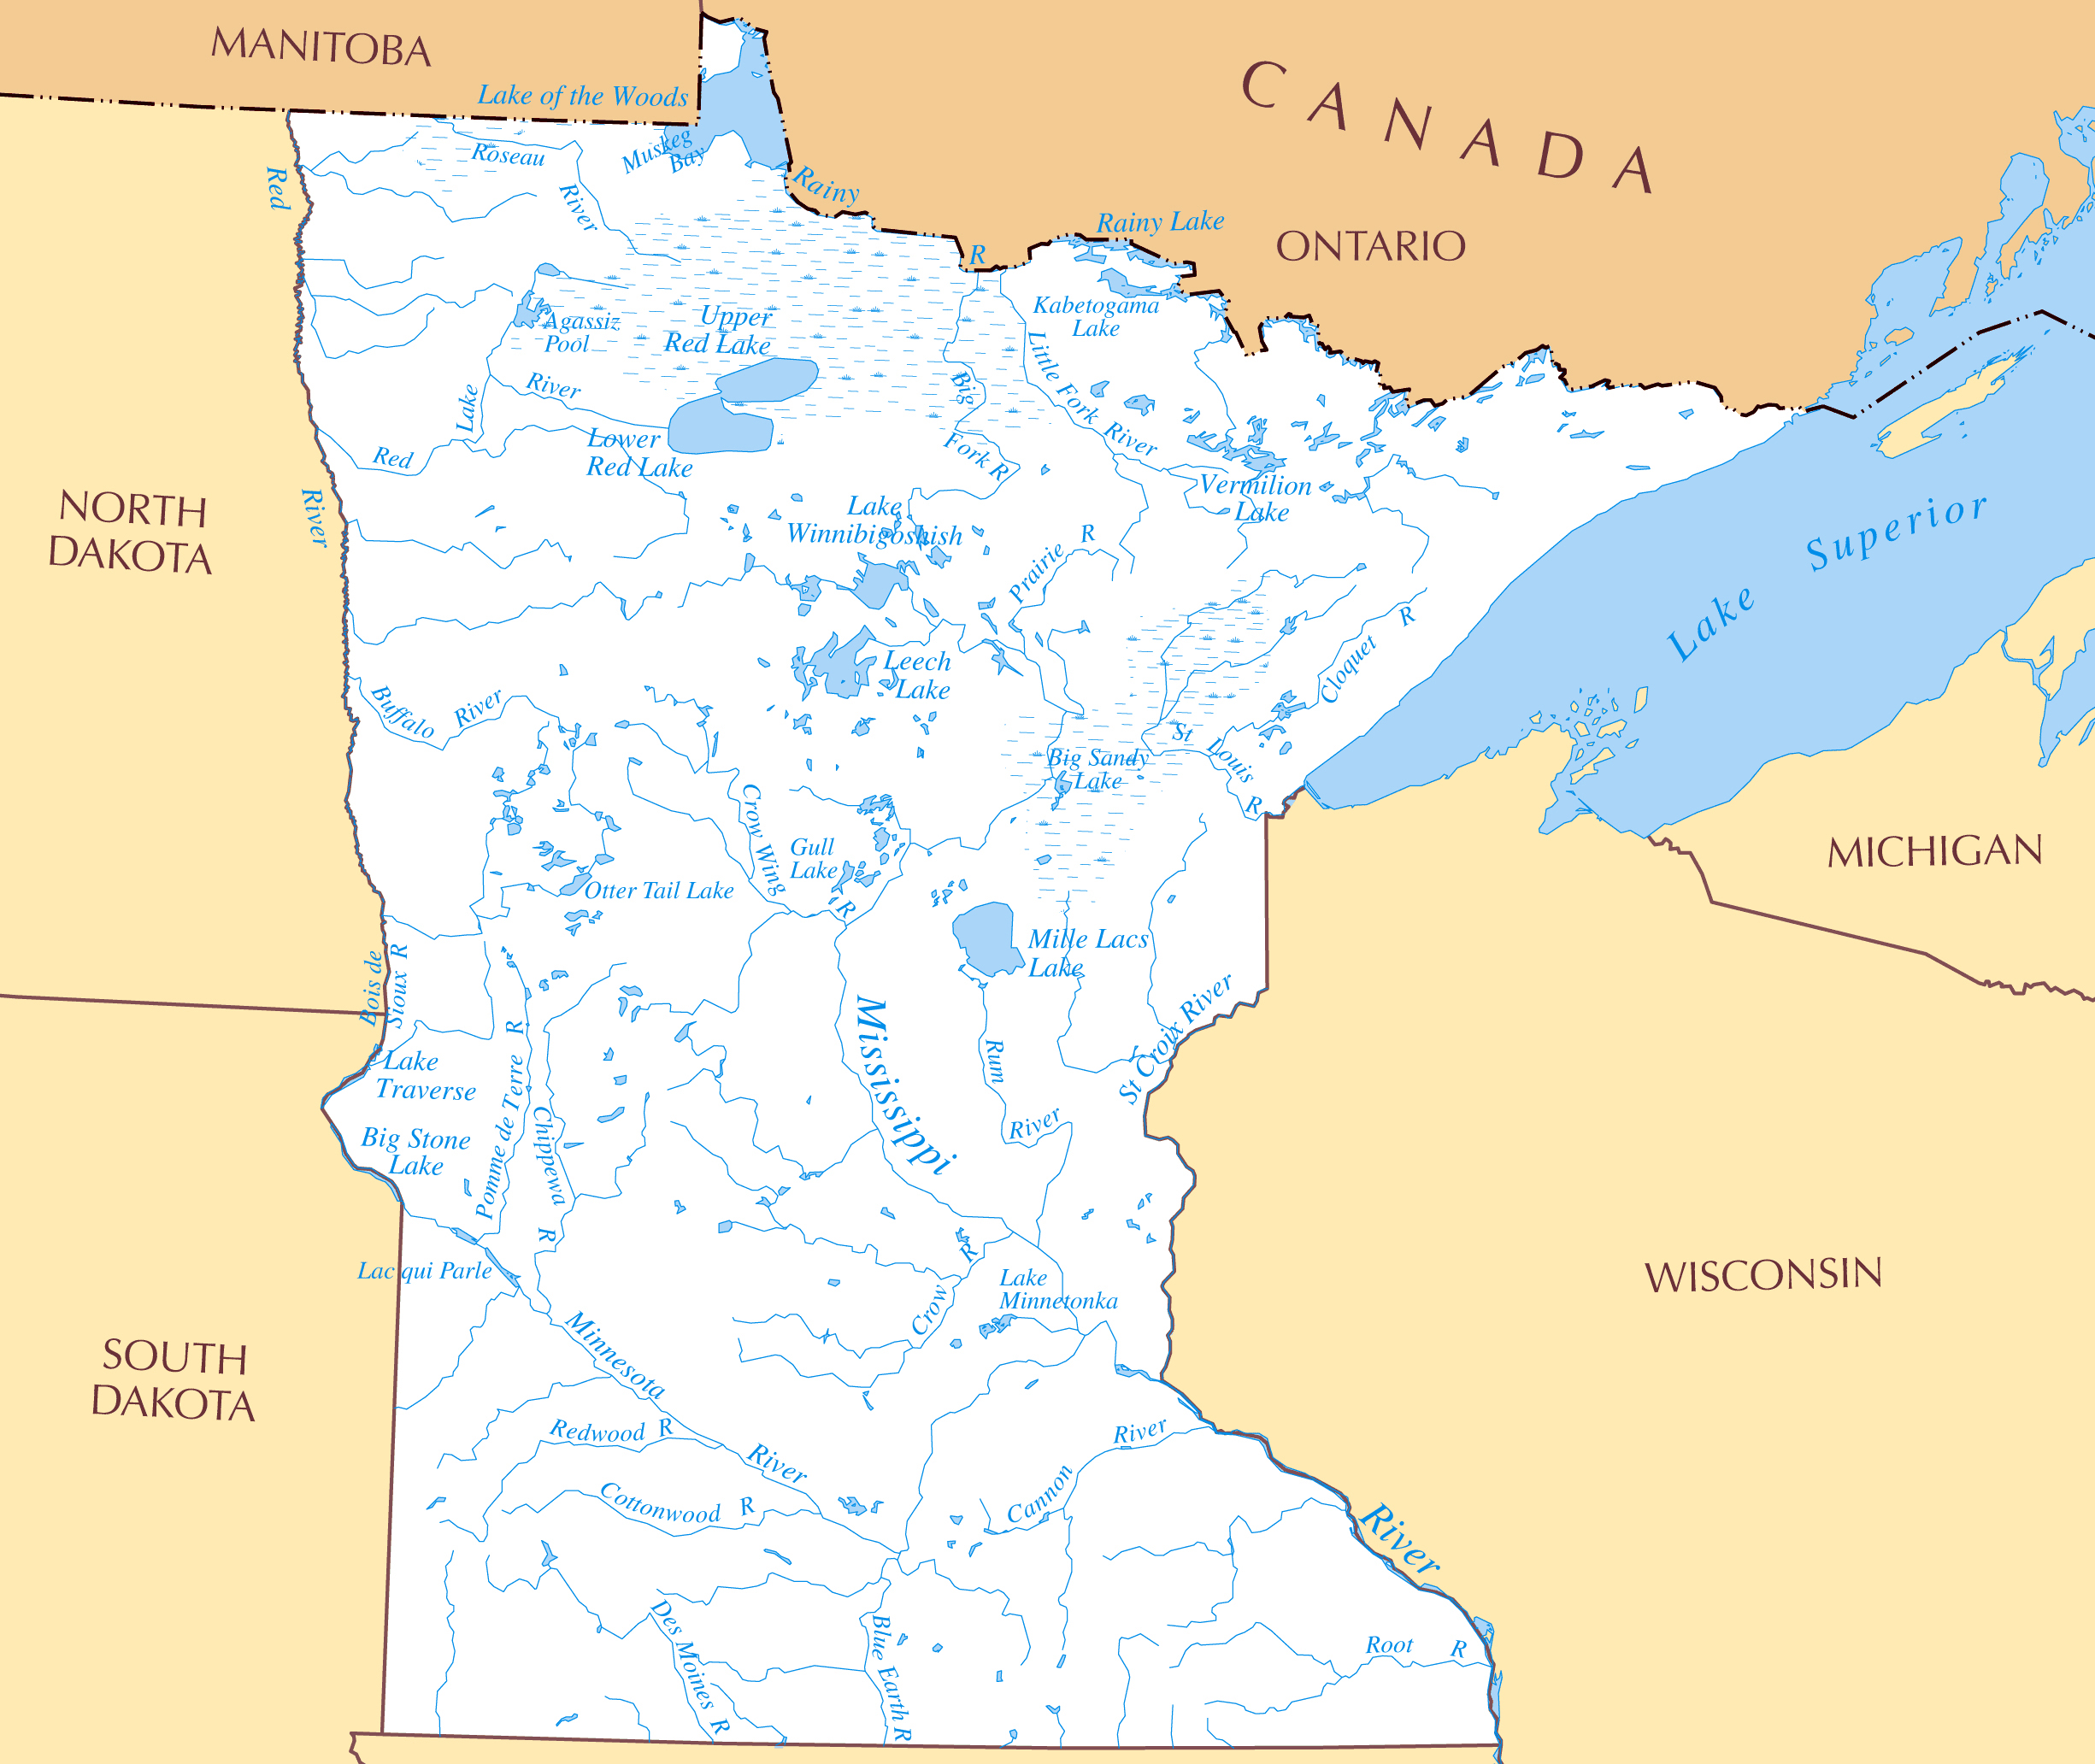 Large rivers and lakes map of Minnesota state Minnesota state